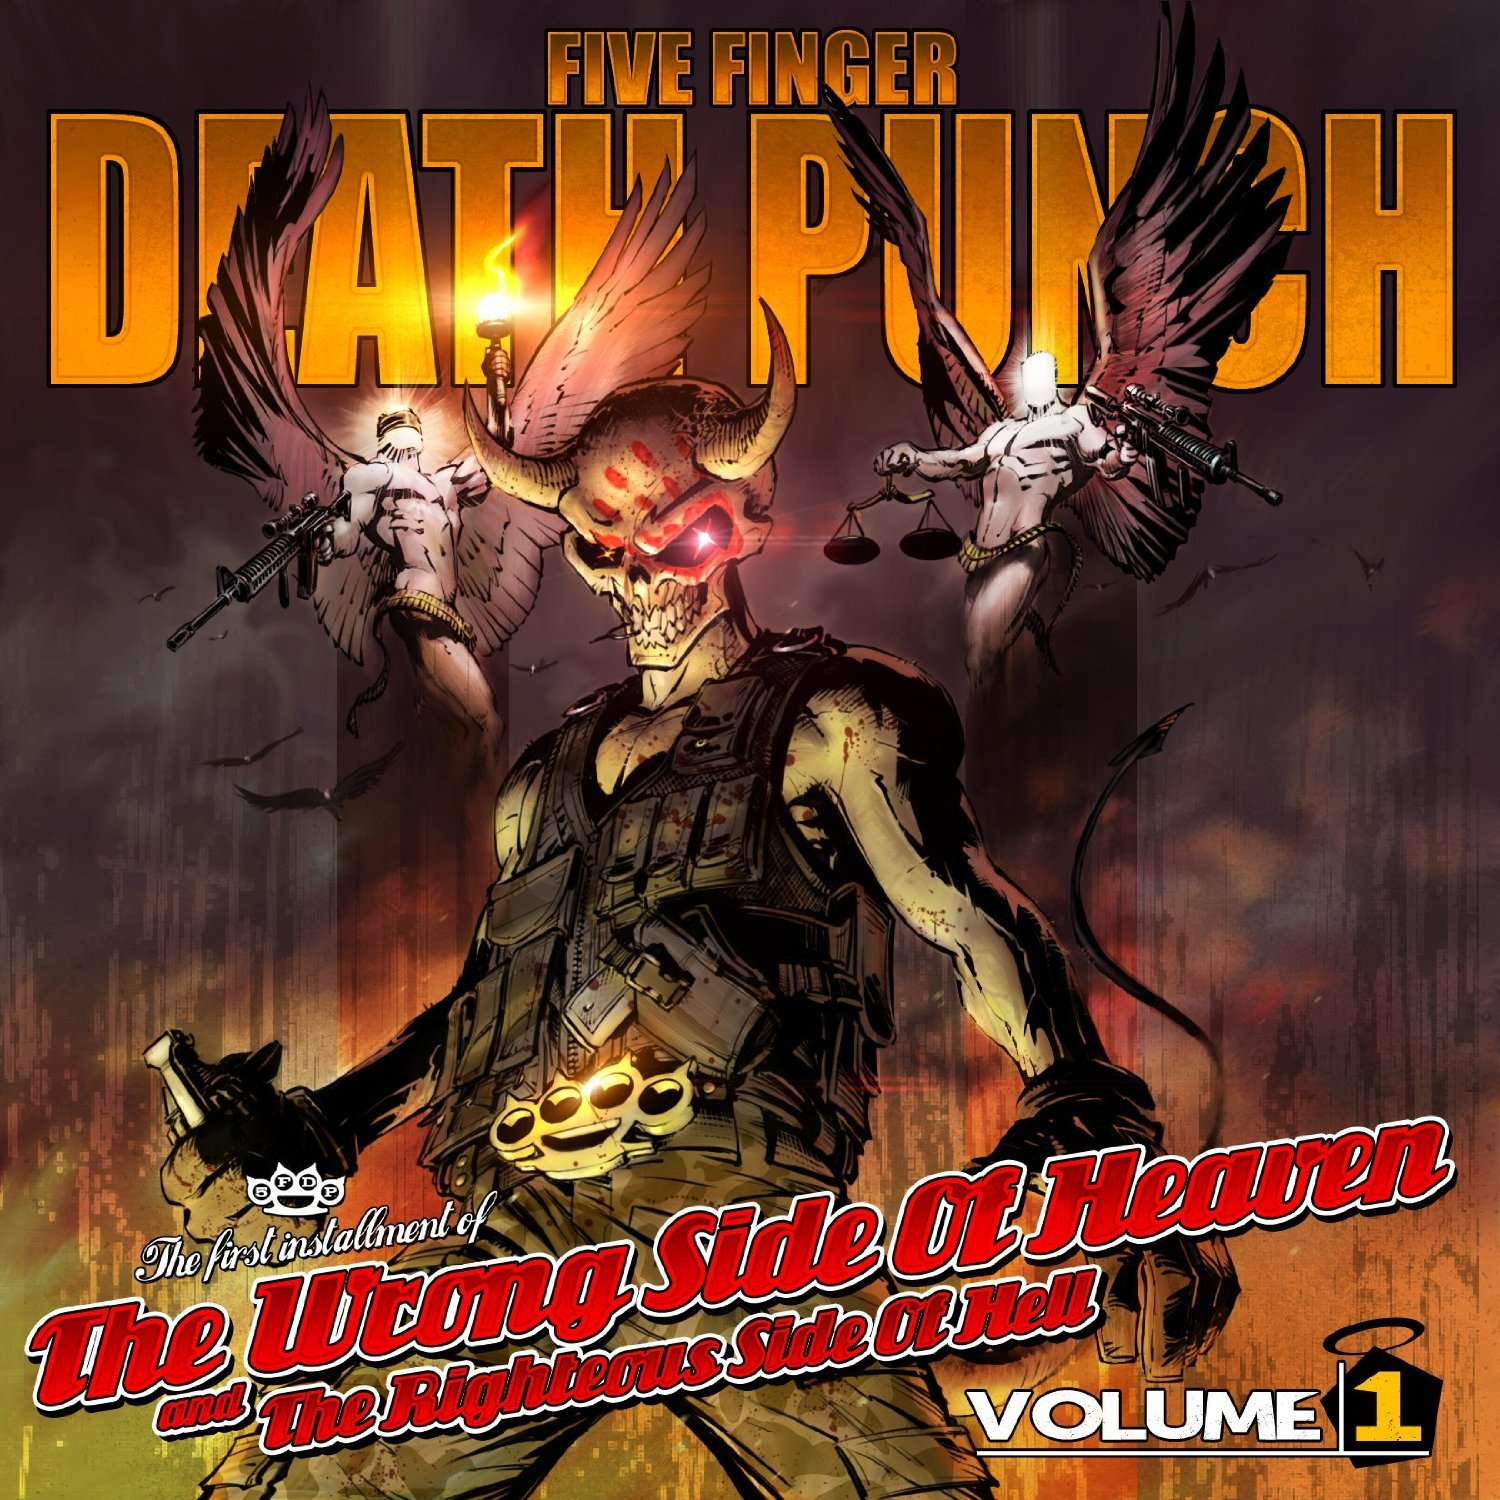 Five Finger Death Punch - THE WRONG SIDE OF HEAVEN AND THE RIGHTEOUS SIDE OF HELL VOL.1